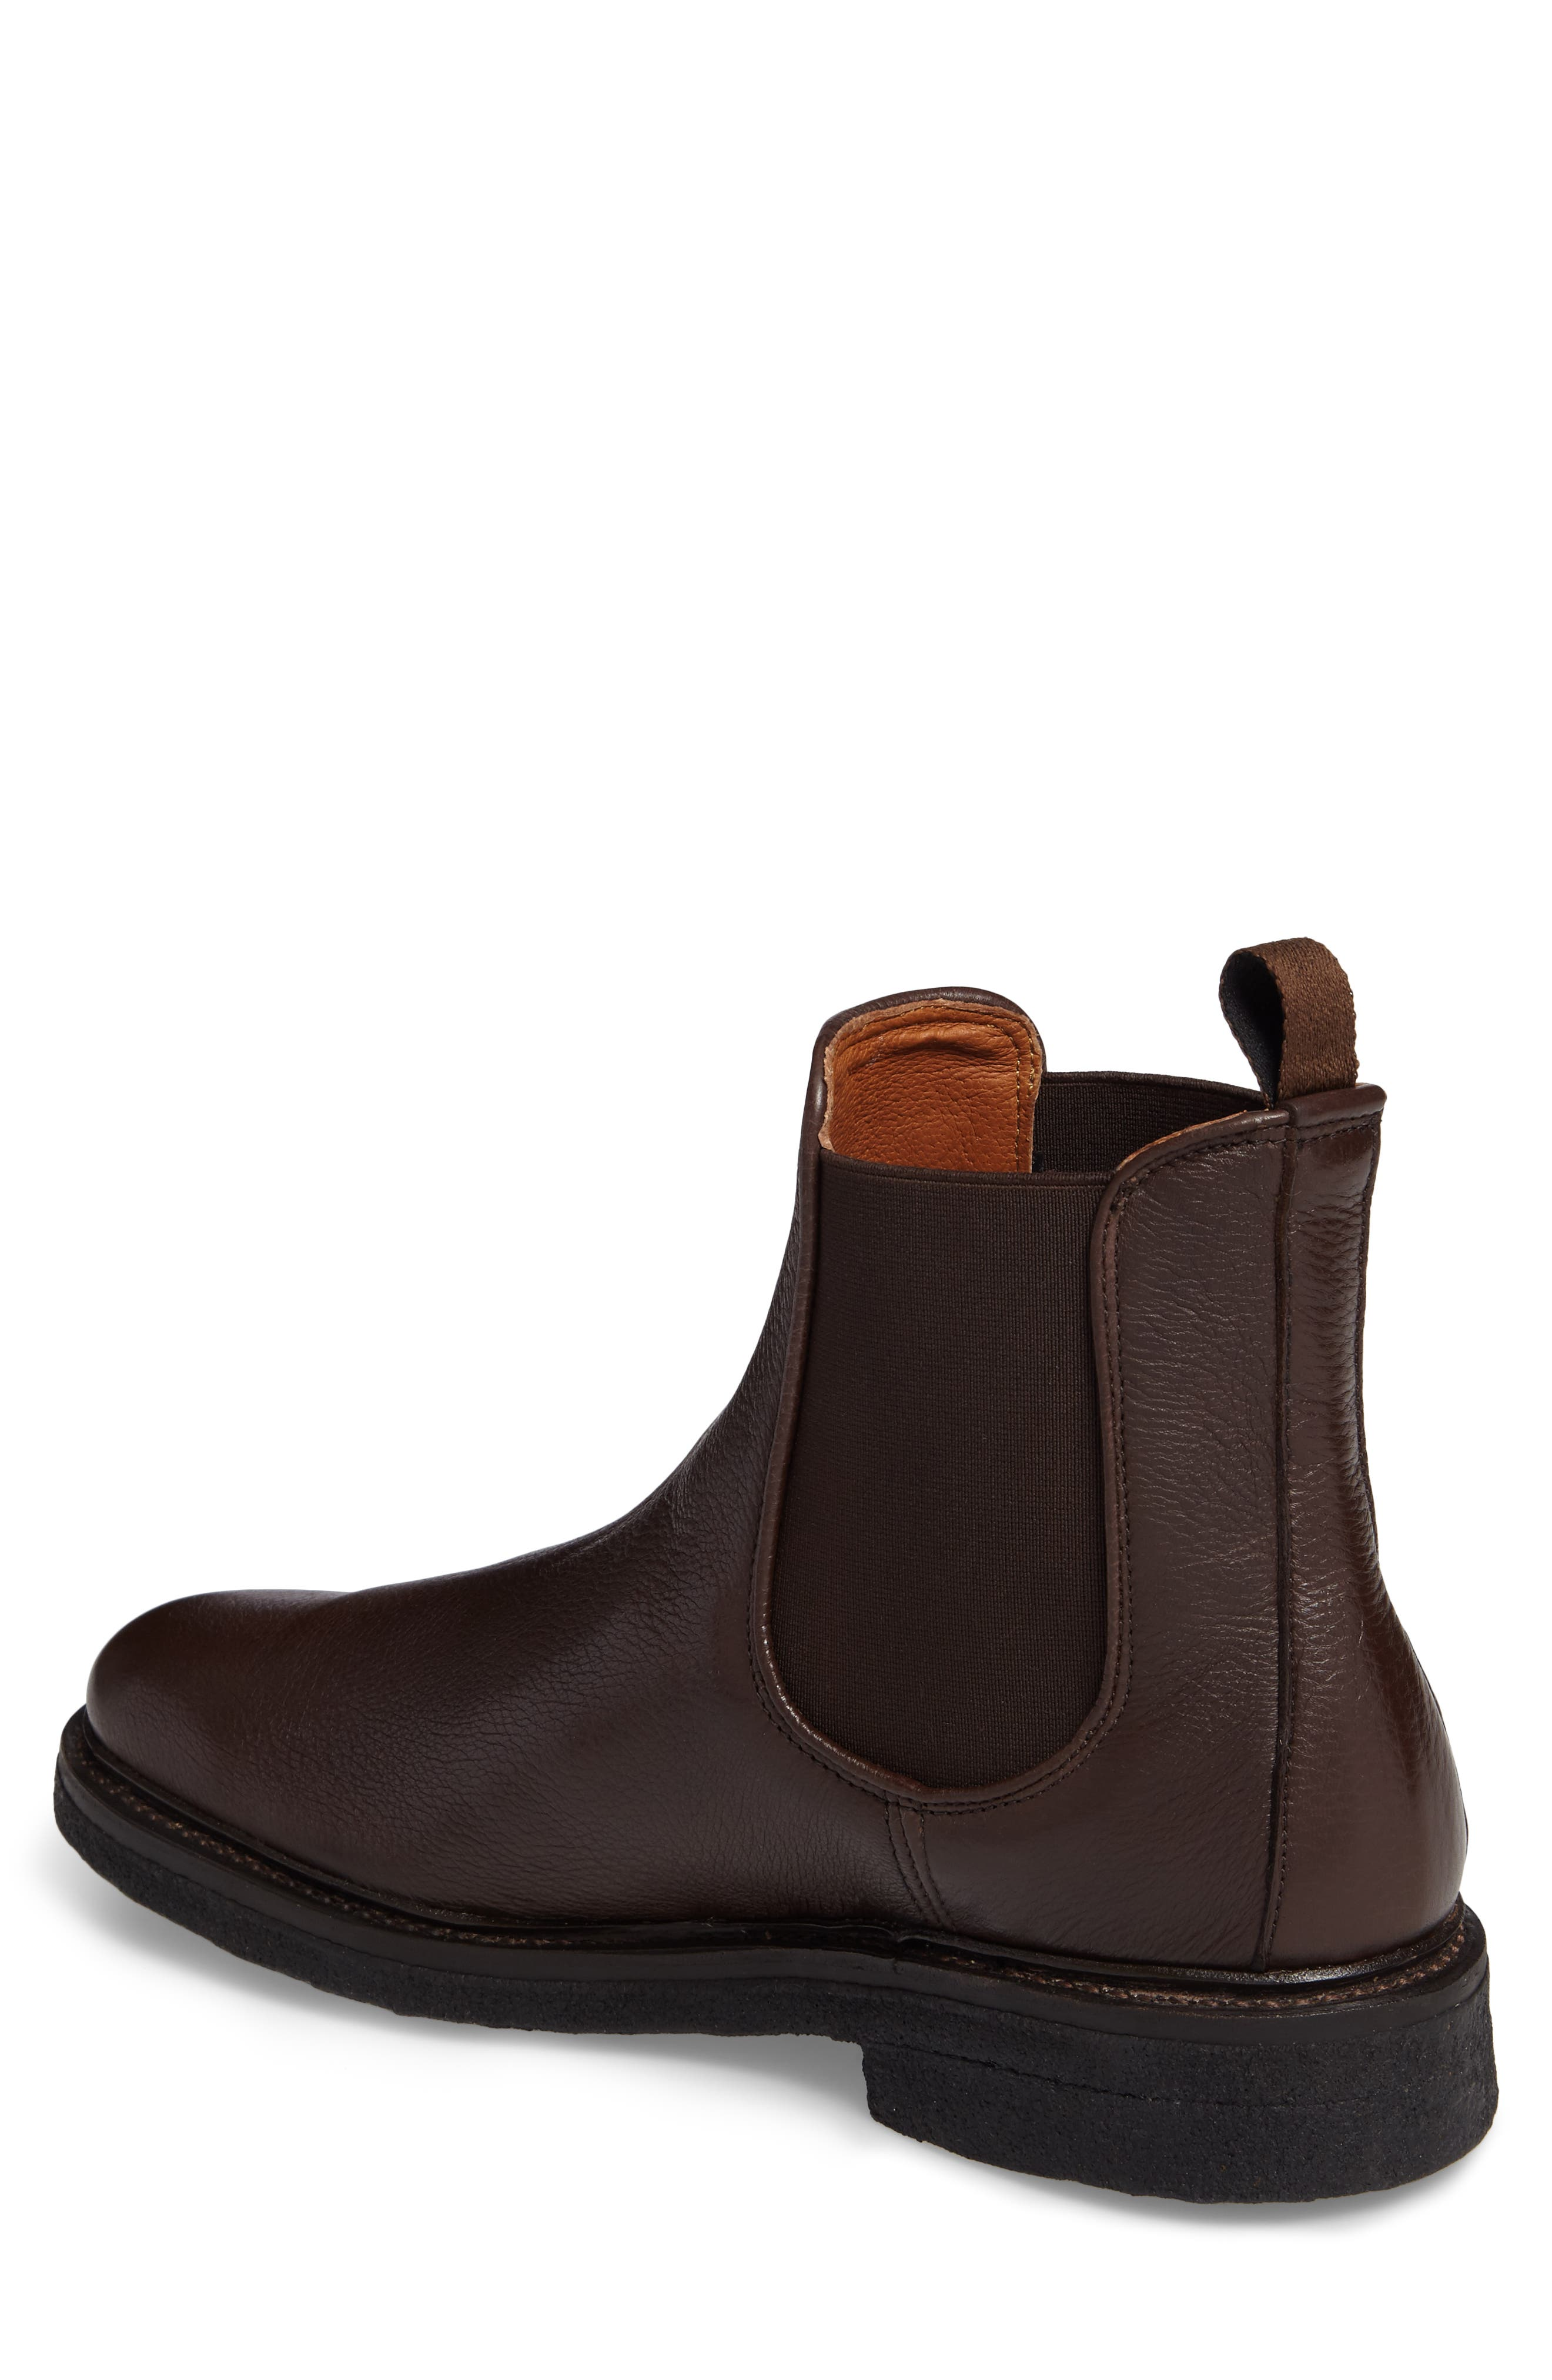 Country Chelsea Boot,                             Alternate thumbnail 2, color,                             200